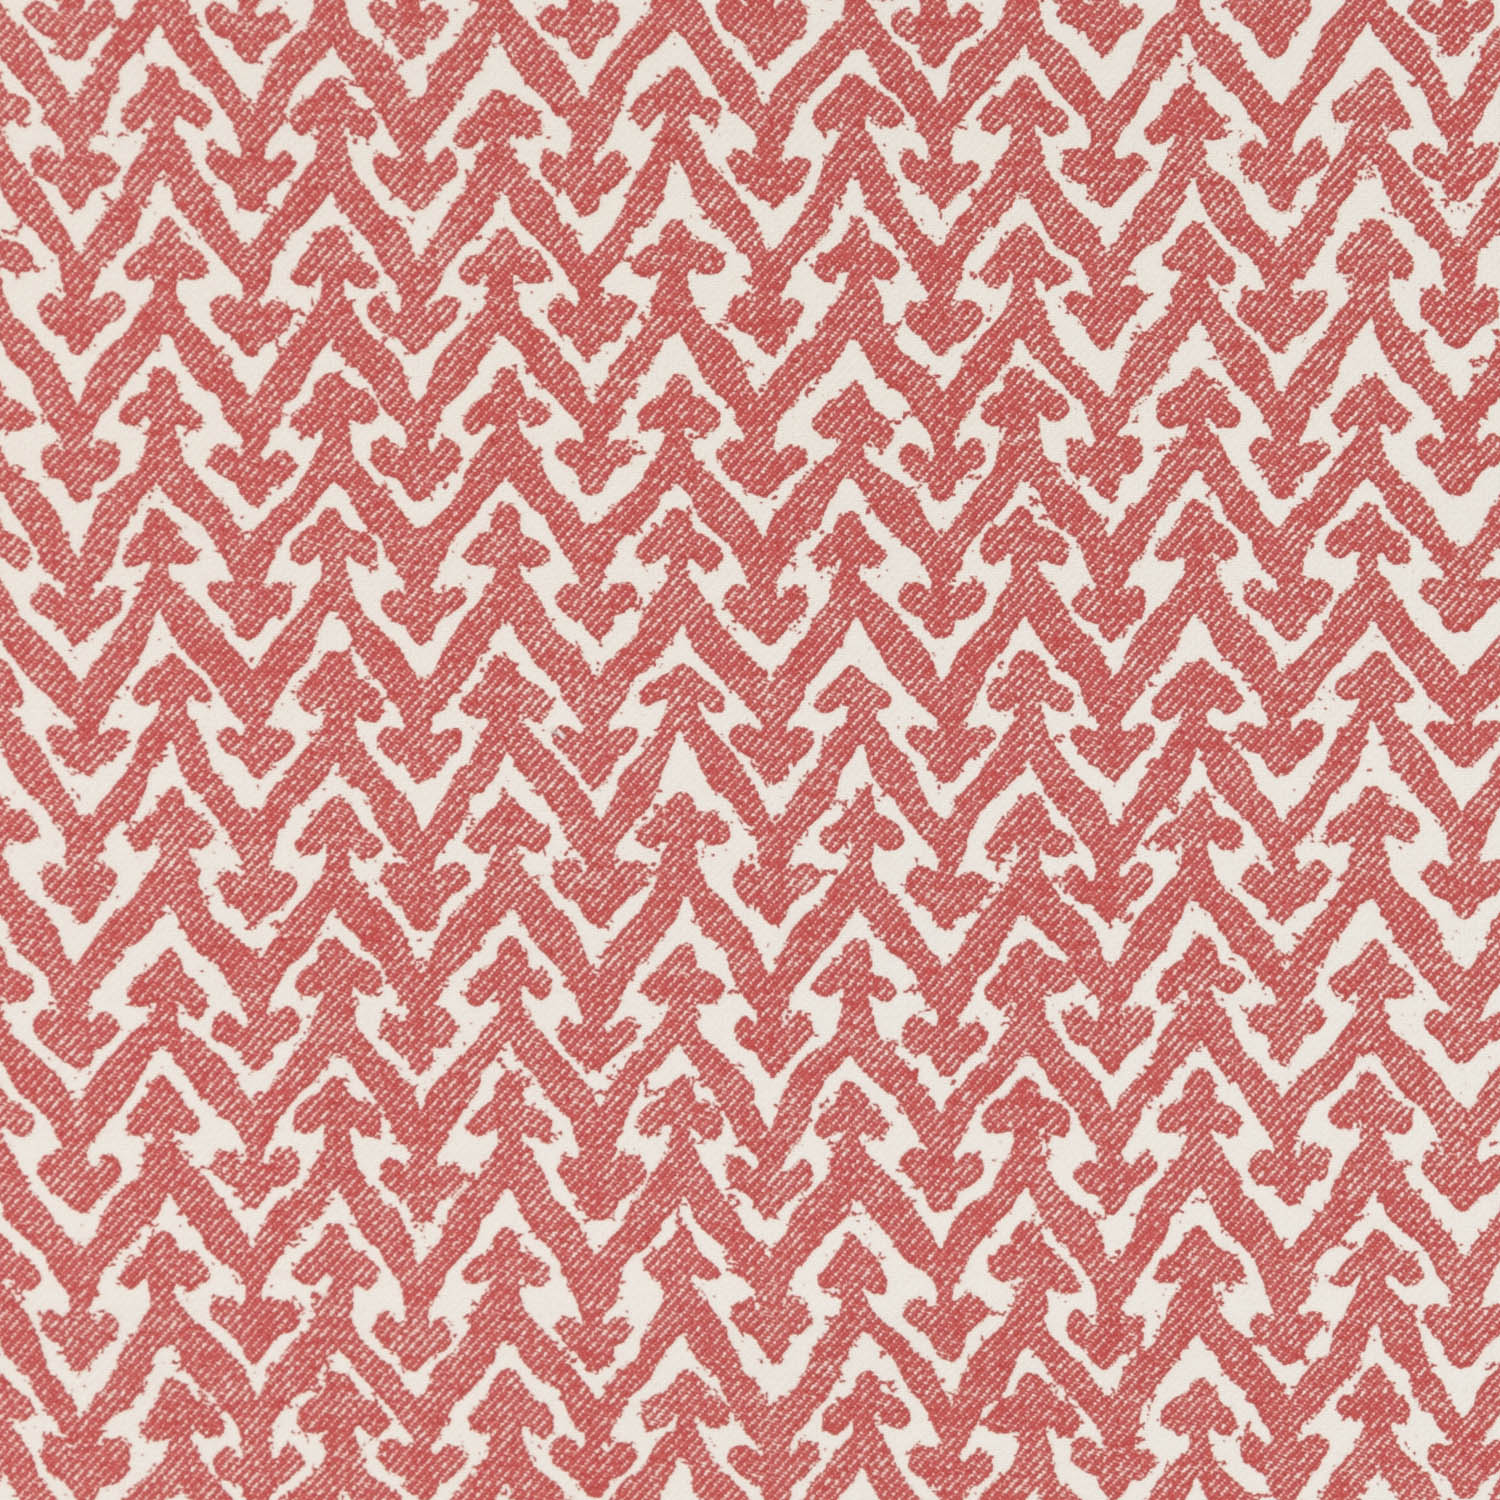 l-196-red-rabanna-cotton-1